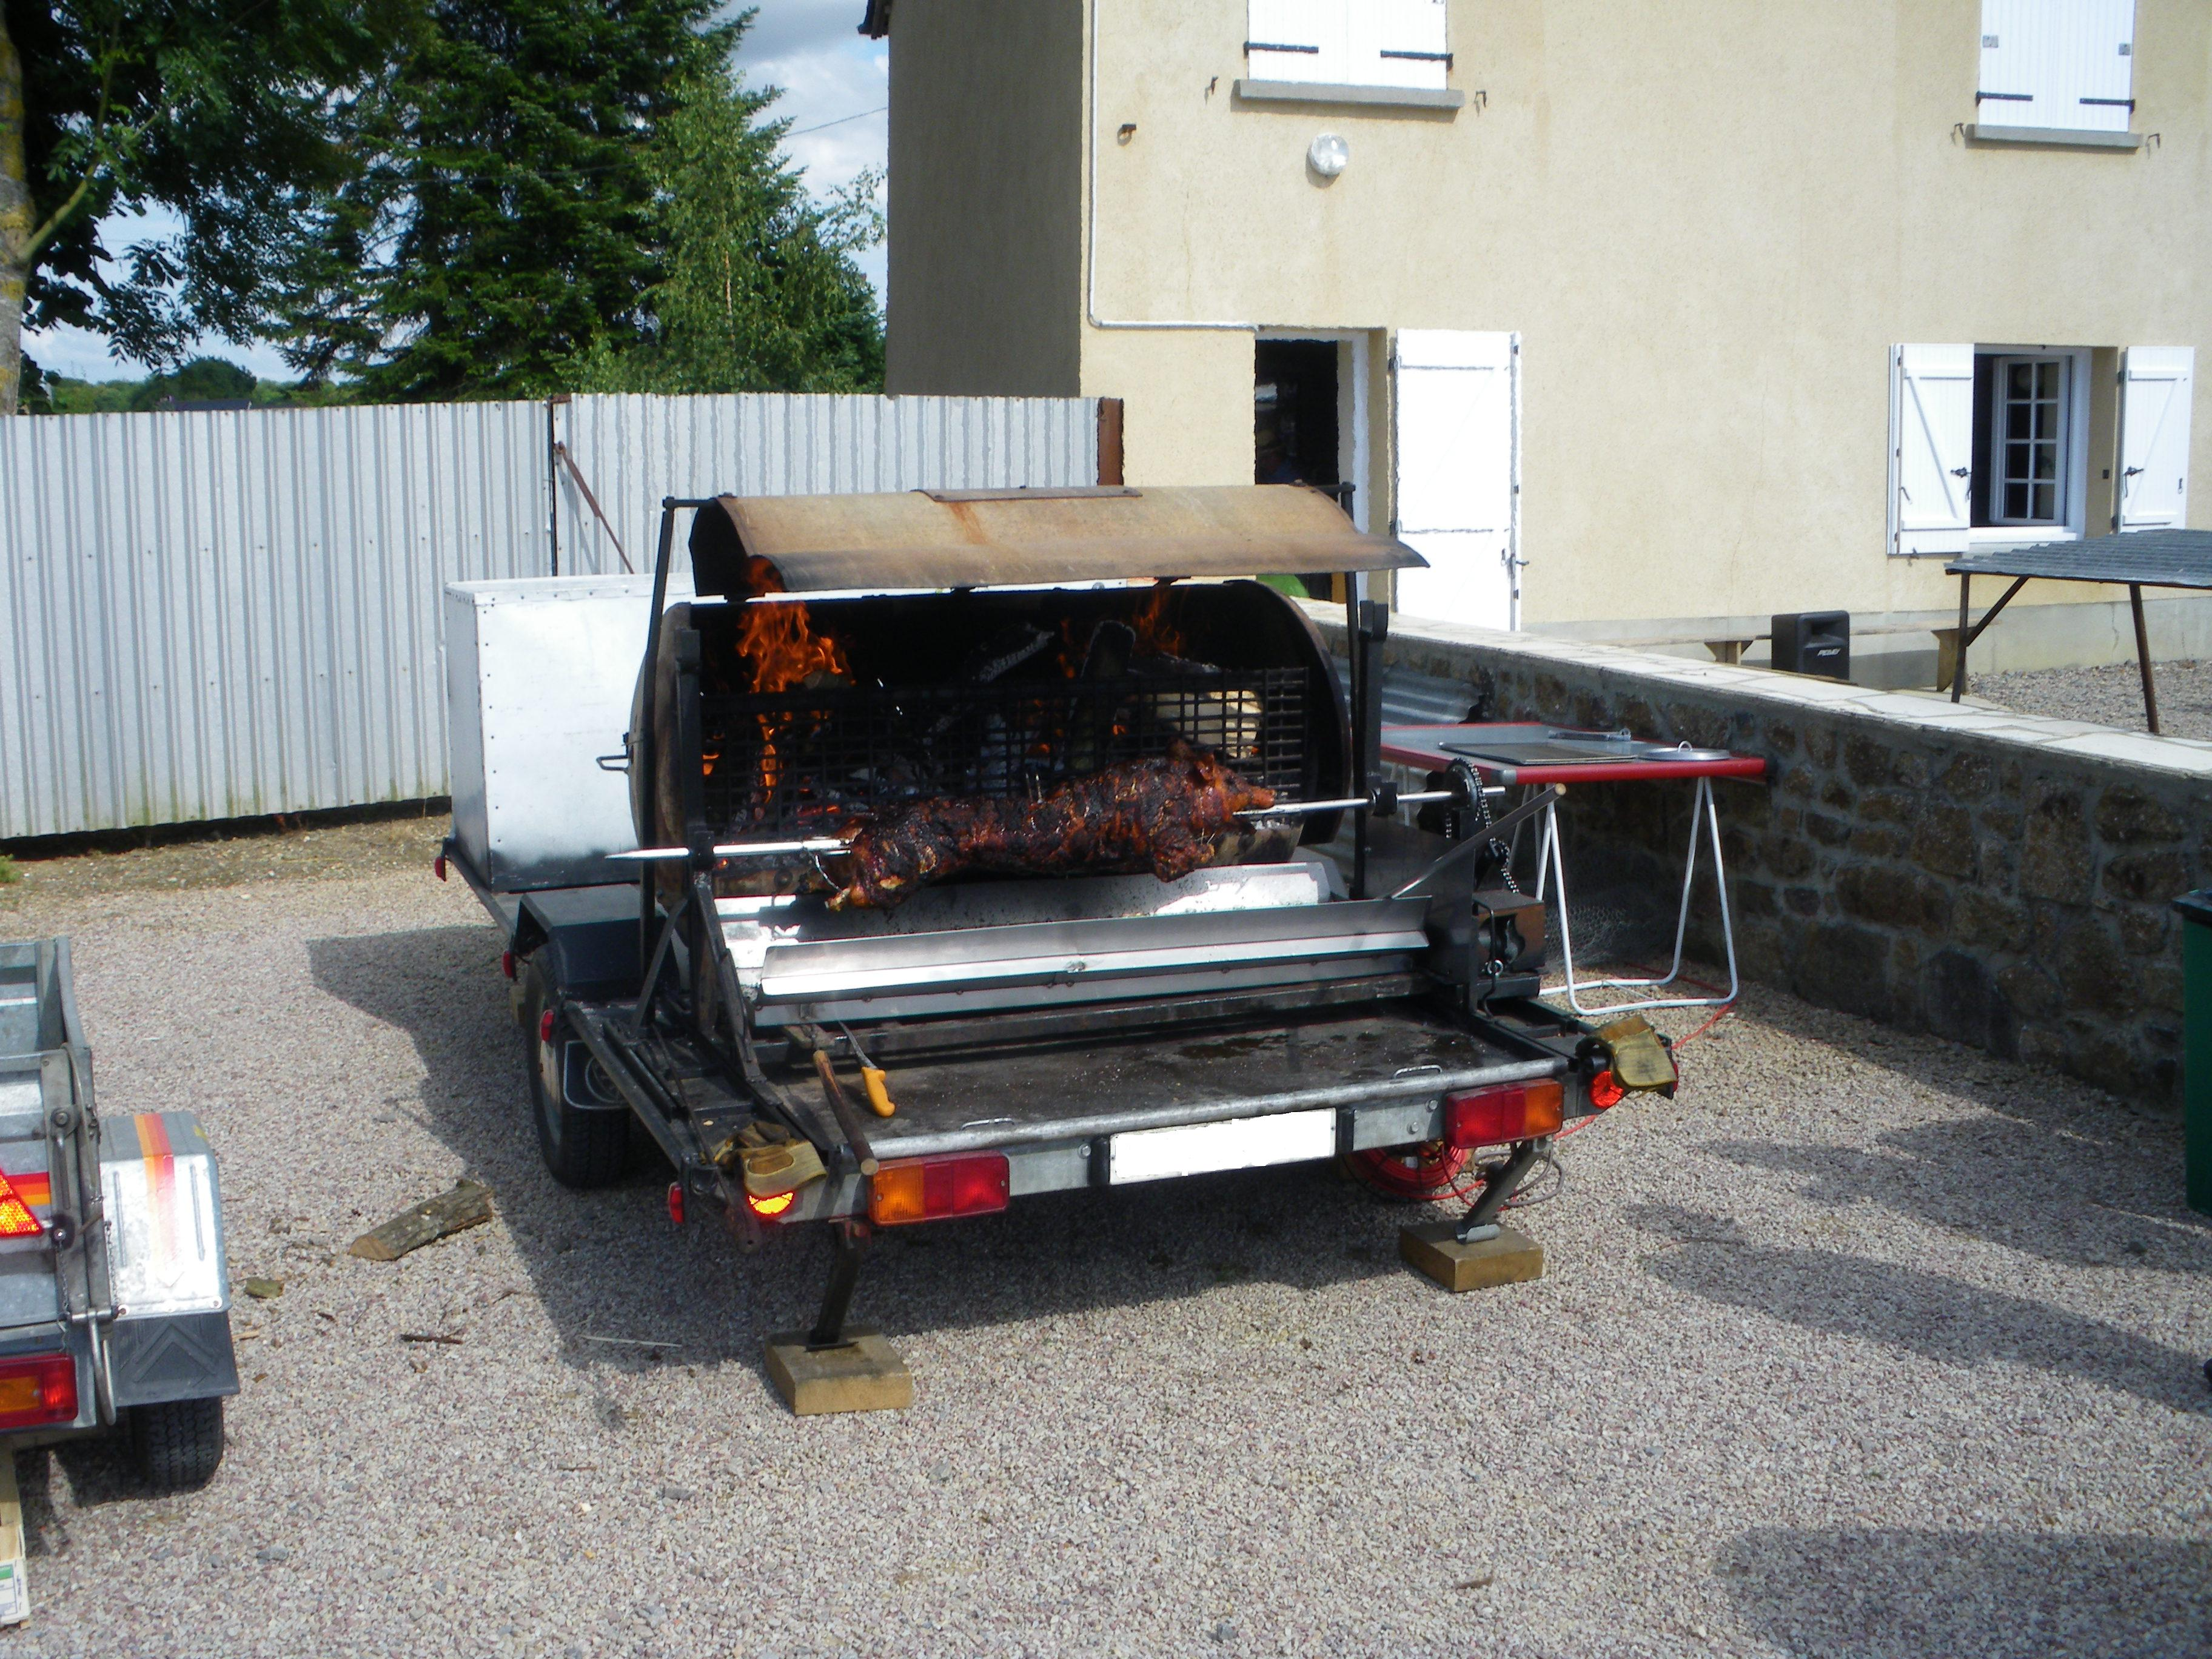 photo du barbecue pour faire un cochon grillé